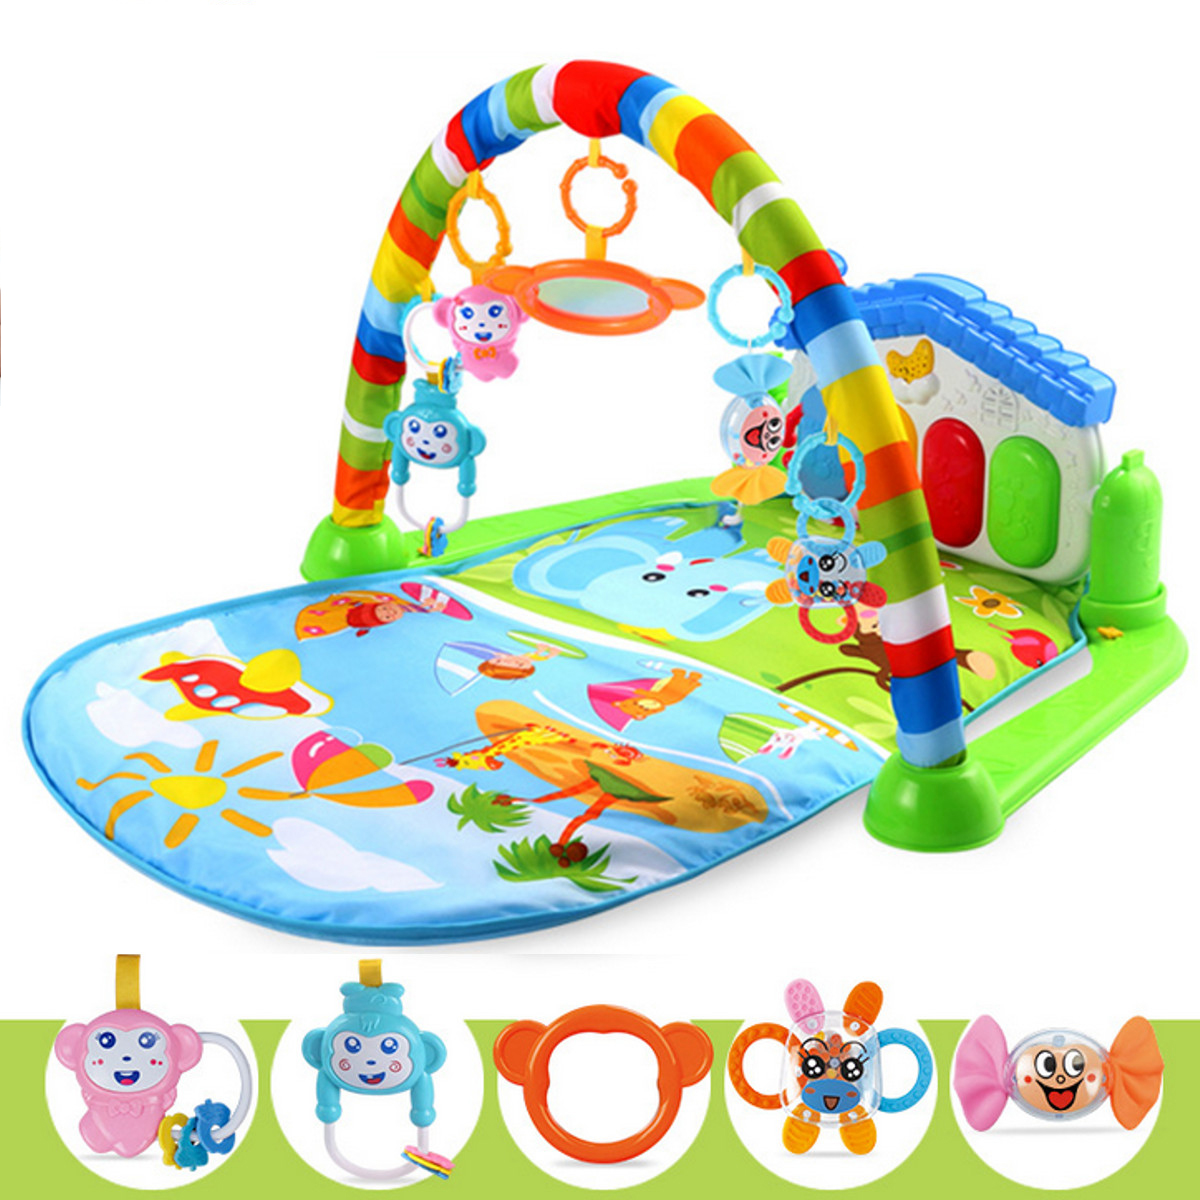 Baby Gym Fitness Playmat Lay Play Music Lights Fun Piano Activity Toy Christmas Gift 3 in 1 Newborn Baby Multifunction Play Mat Music Piano Fitness Gym Activity Mats